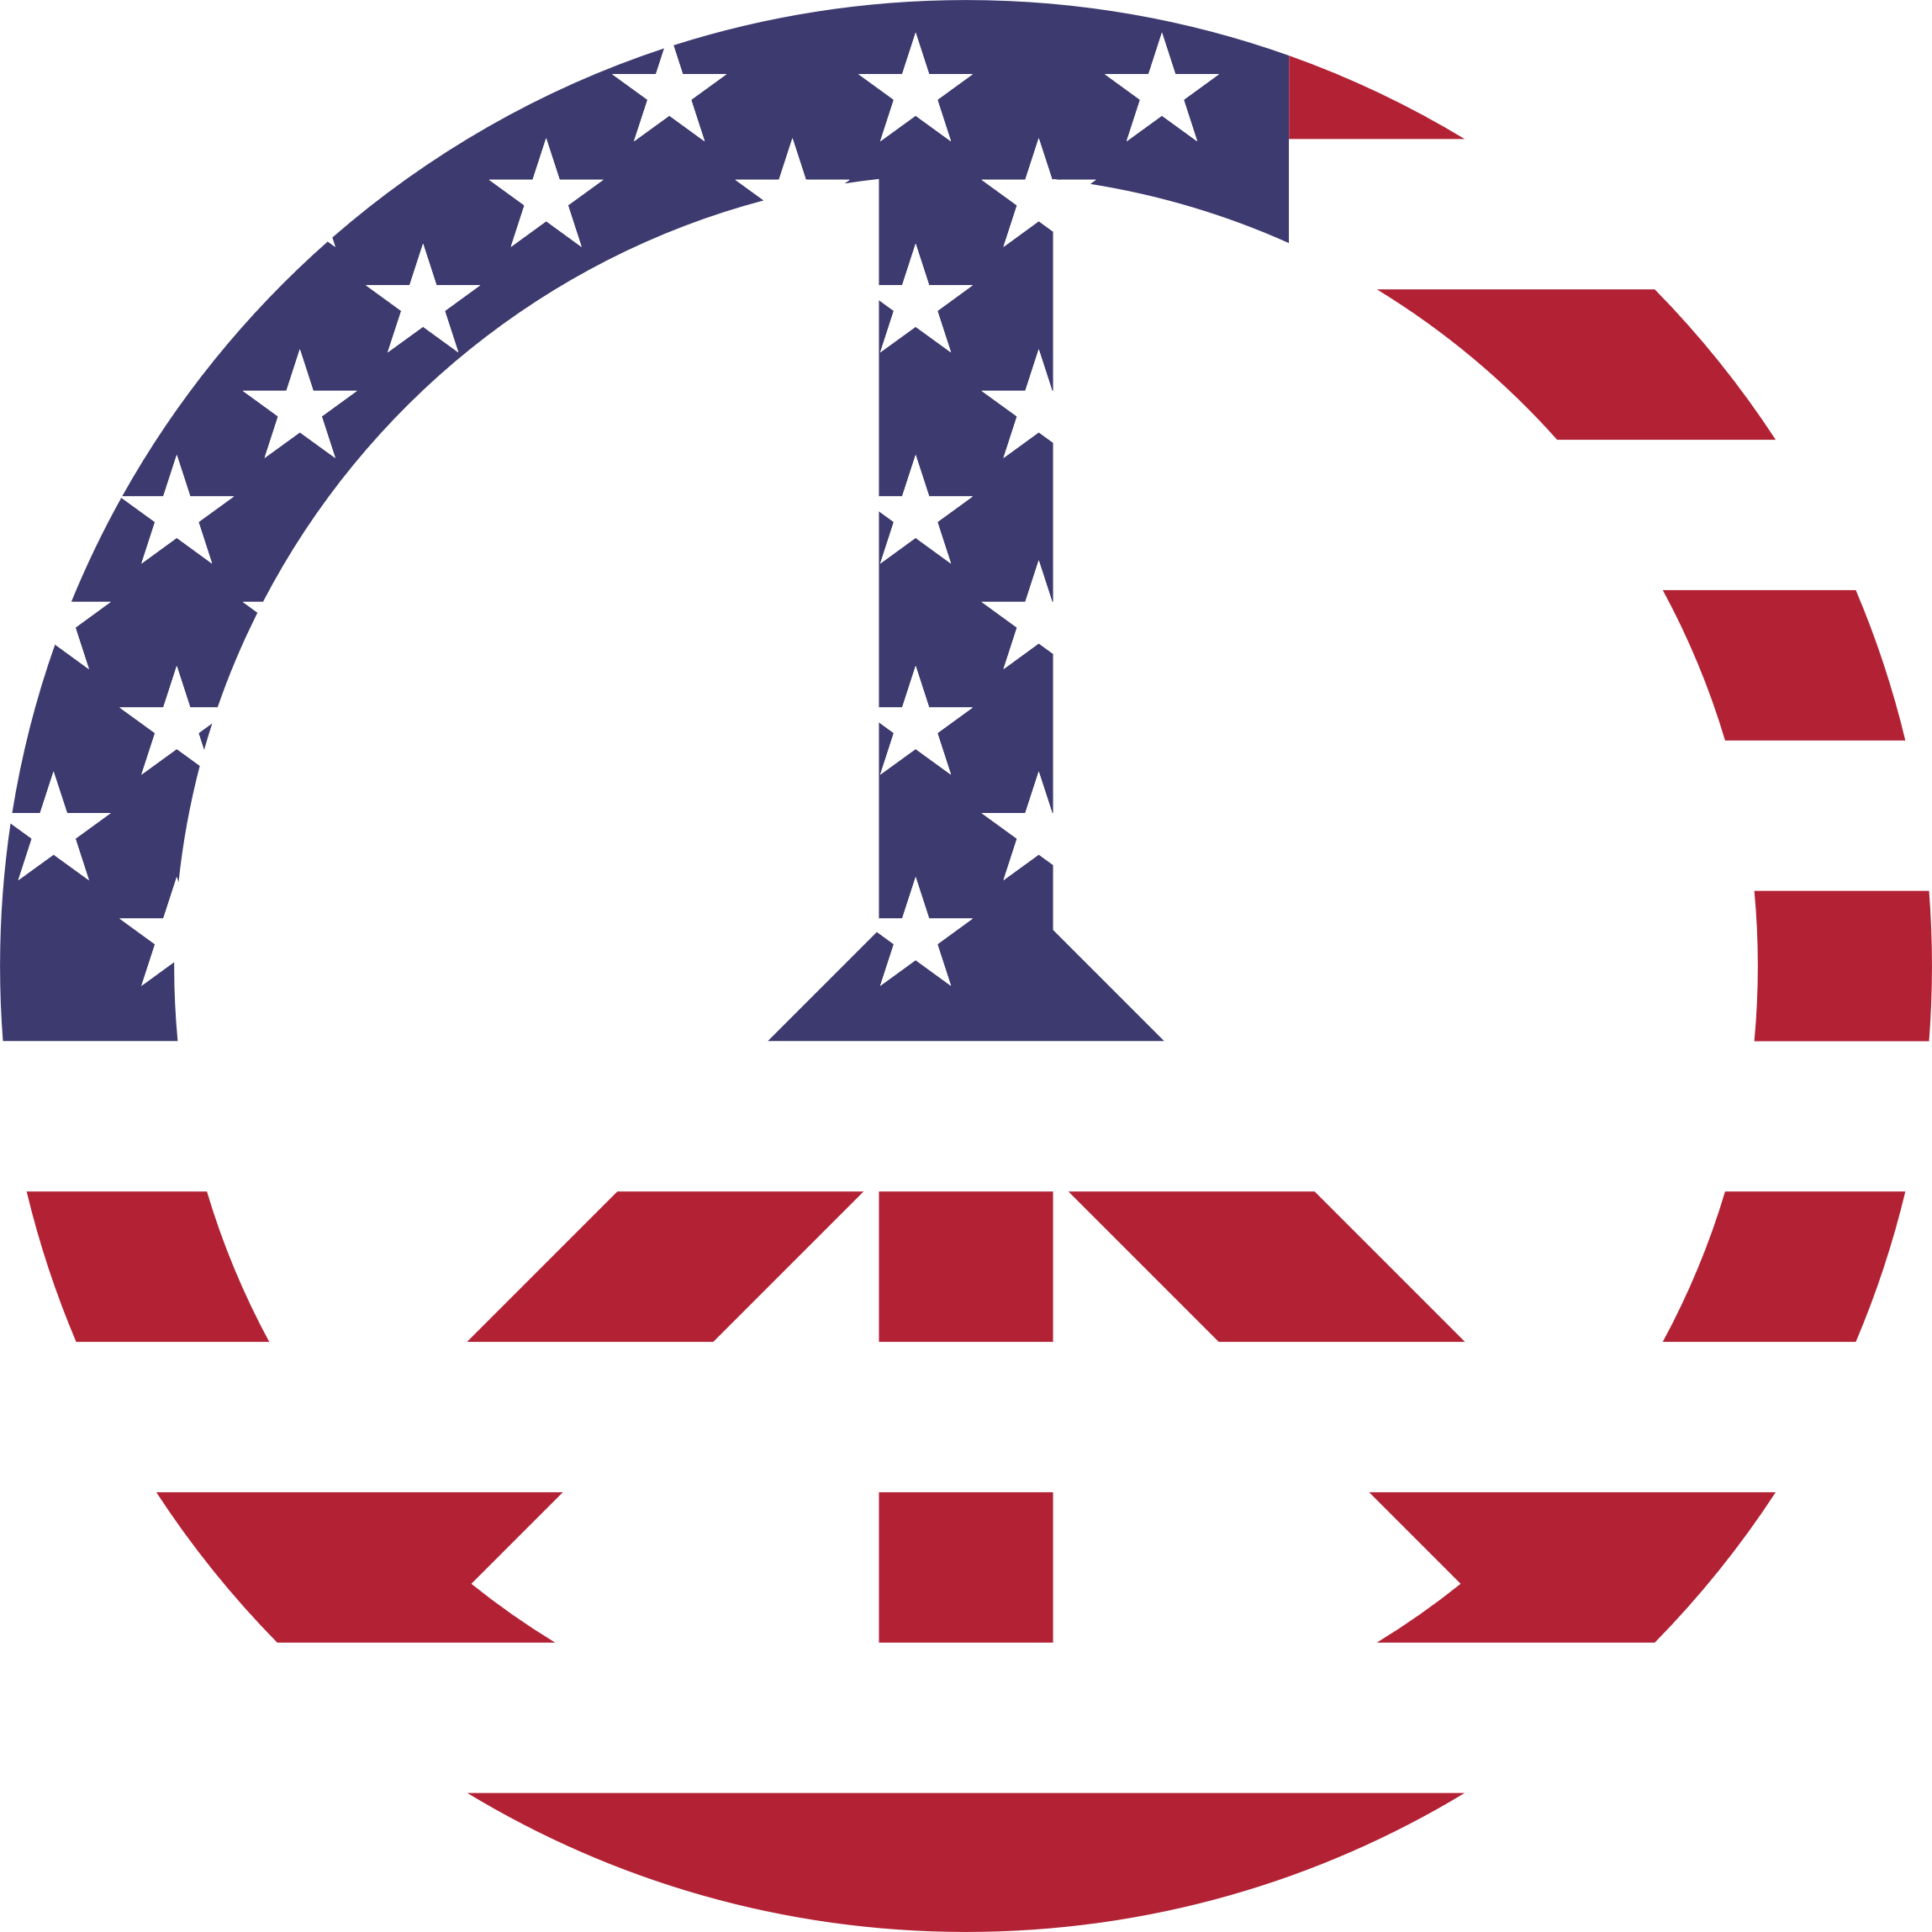 Peace sign png dab. Clipart american flag big